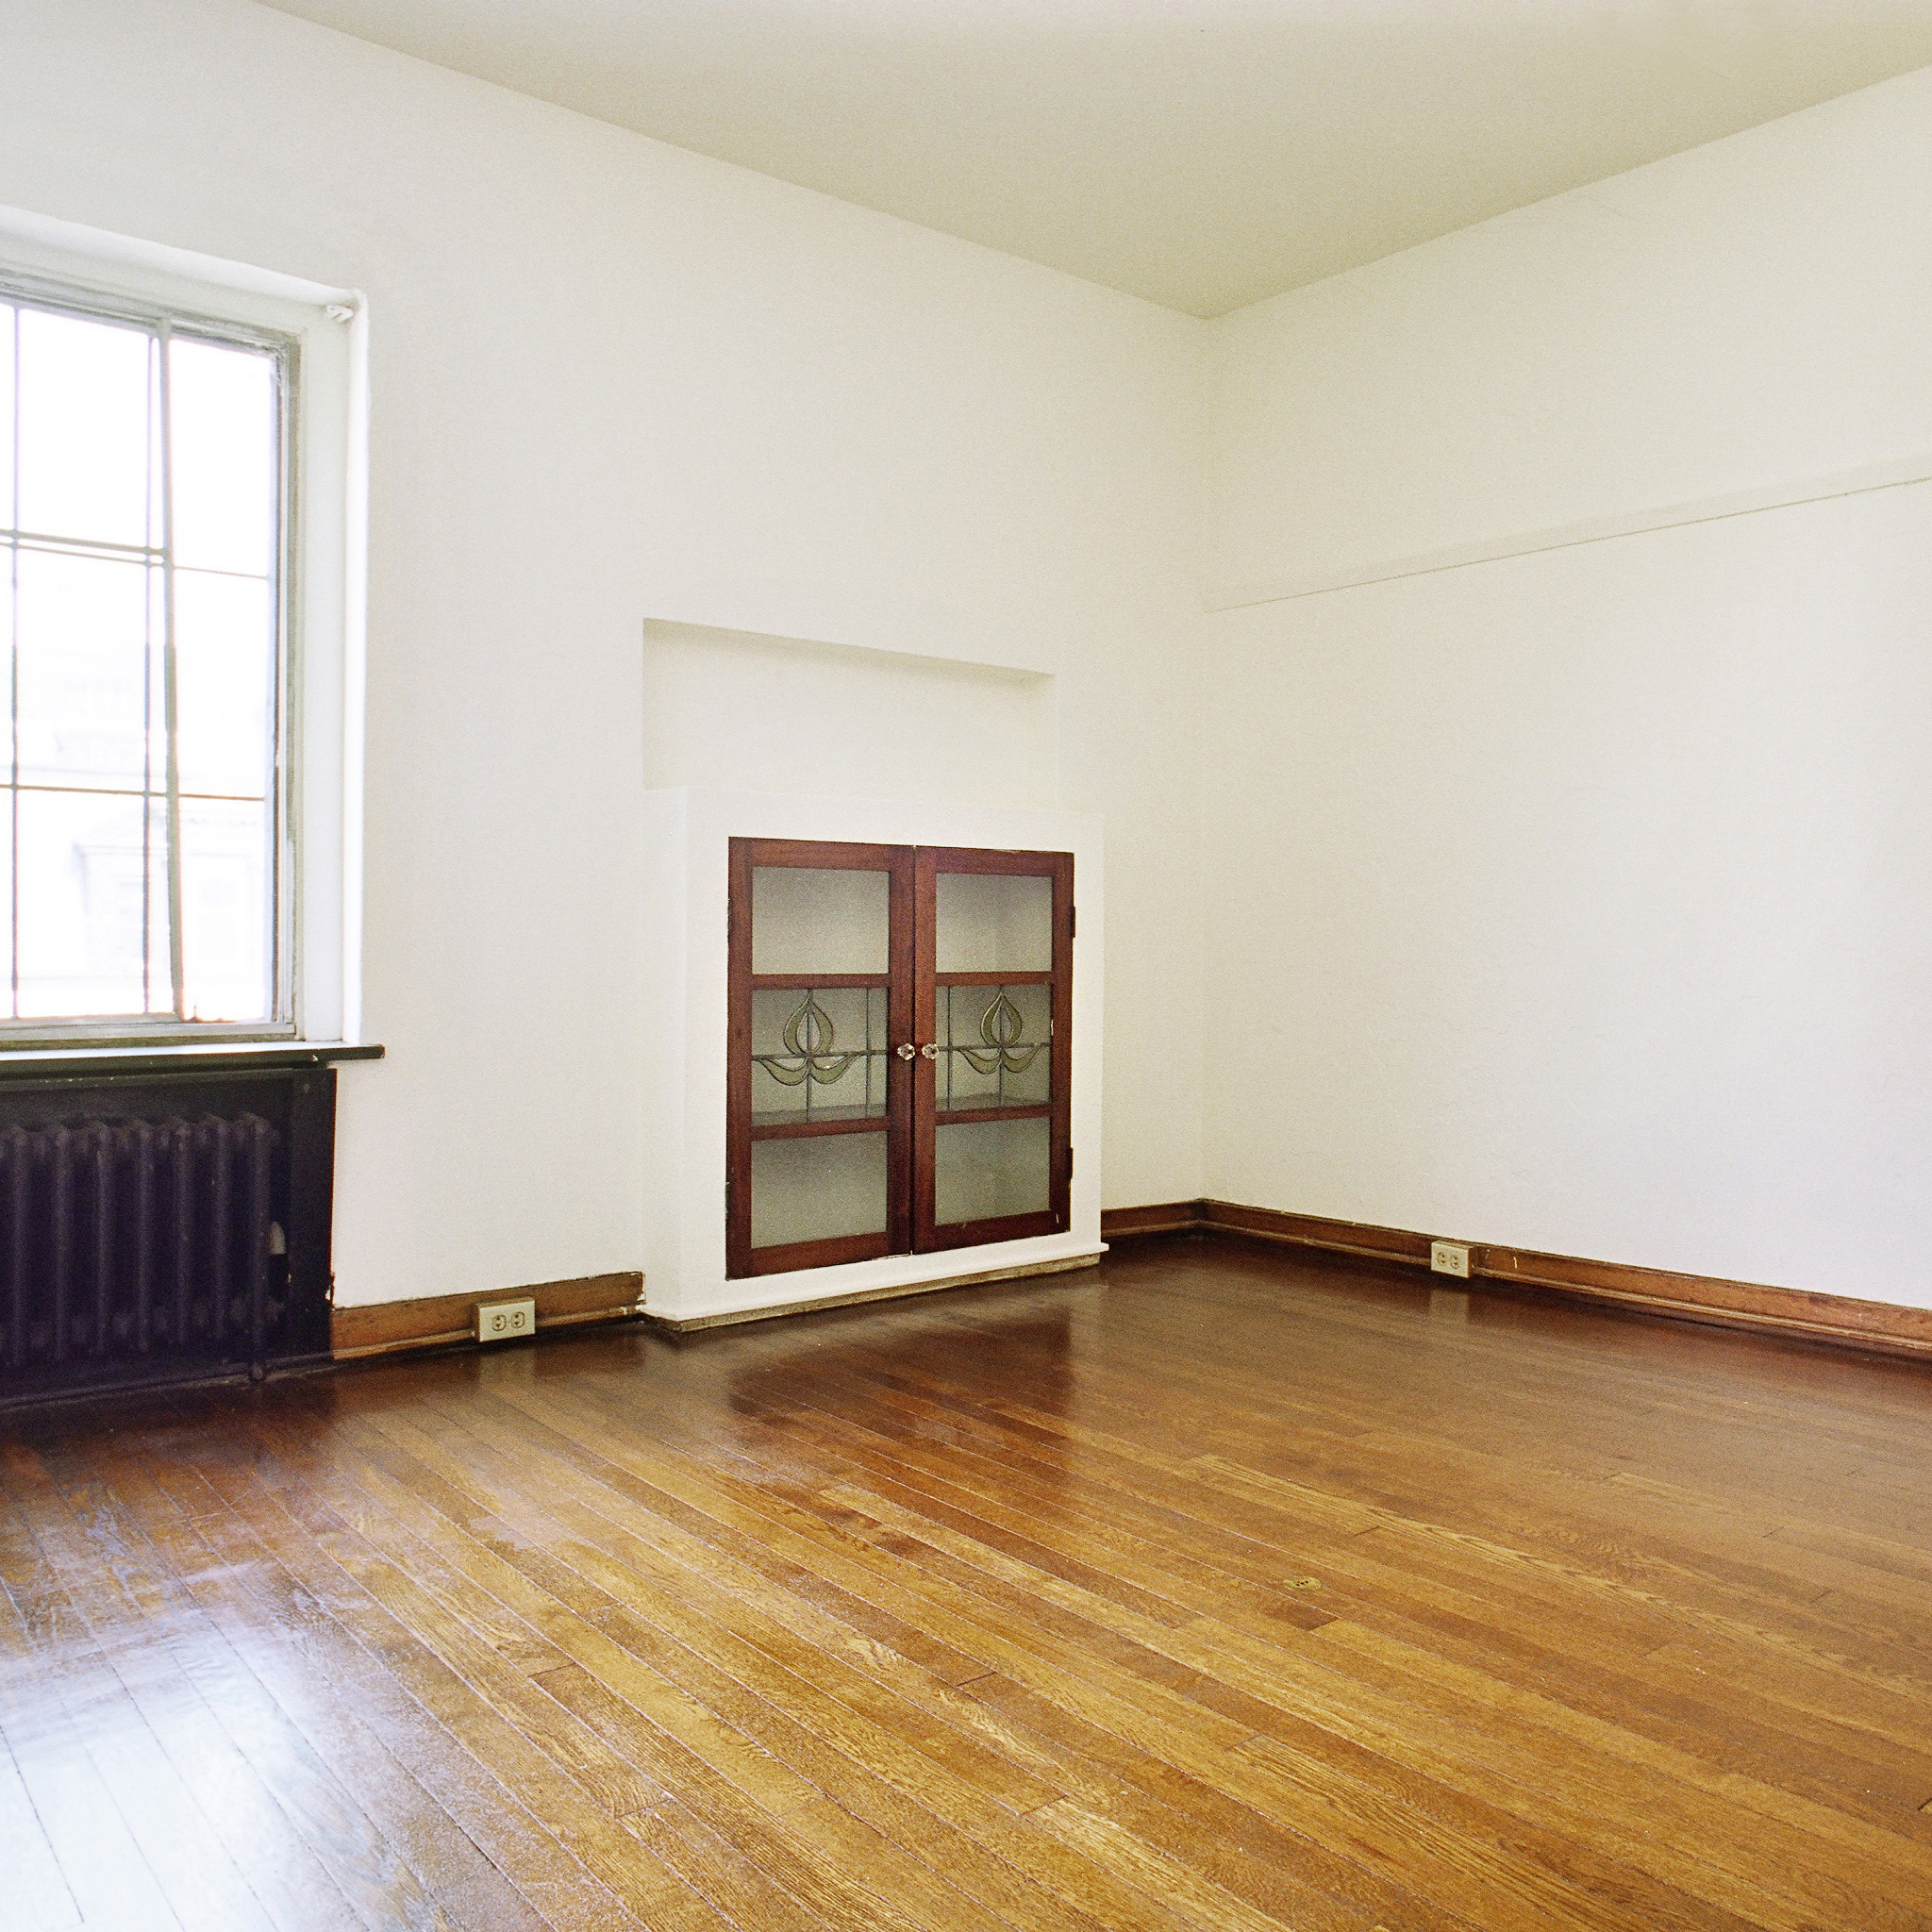 interior of 342 S. Highland Ave, Apt. 15A 2